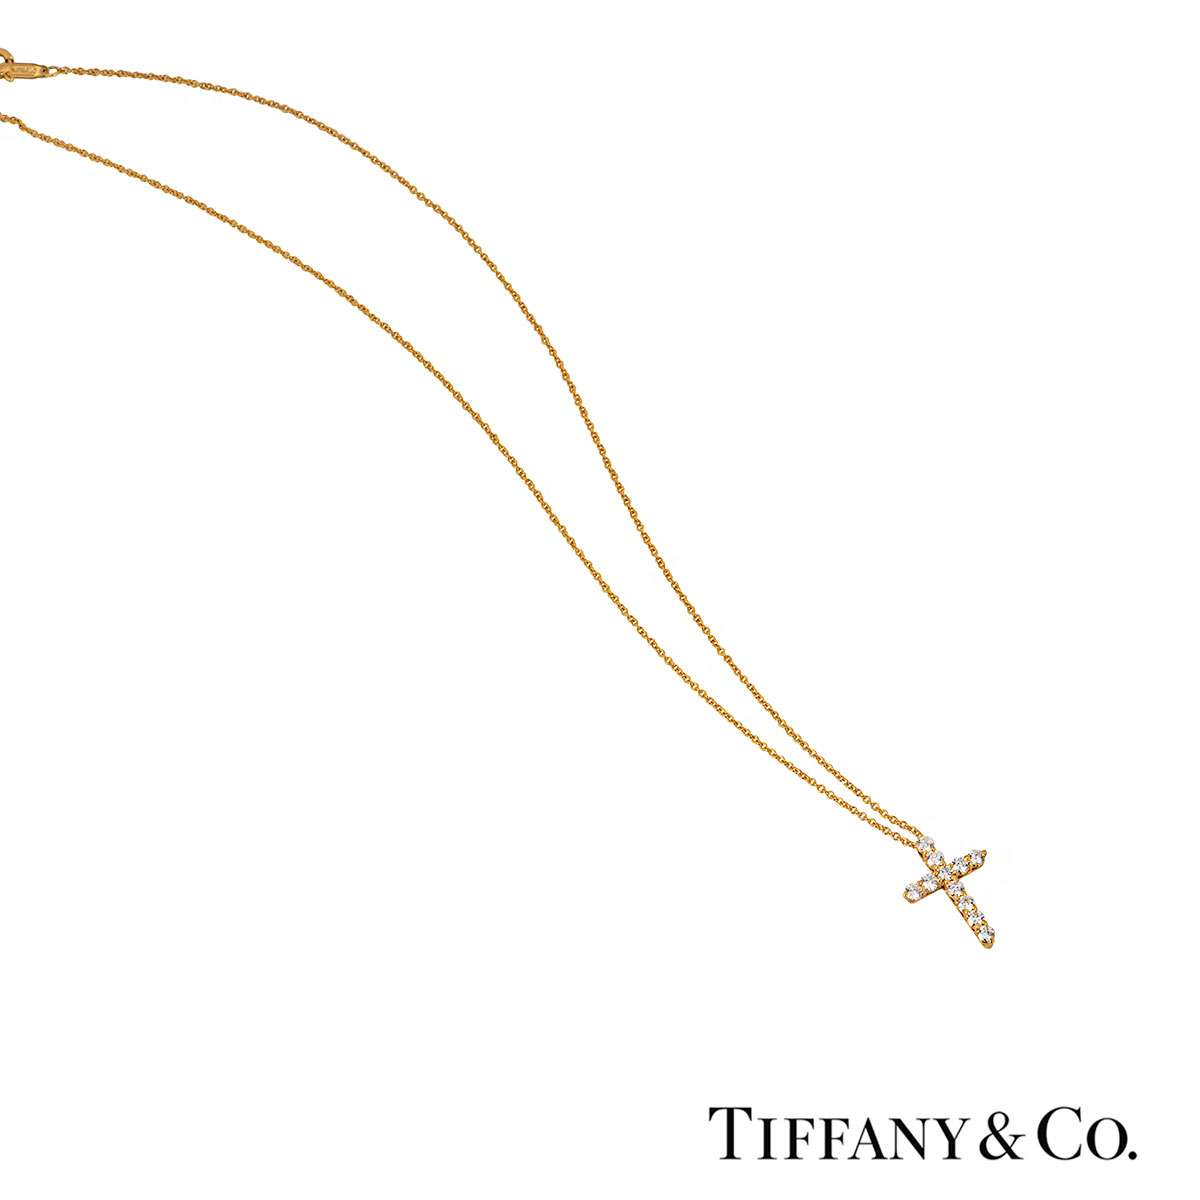 Tiffany & Co. Yellow Gold Diamond Cross Pendant